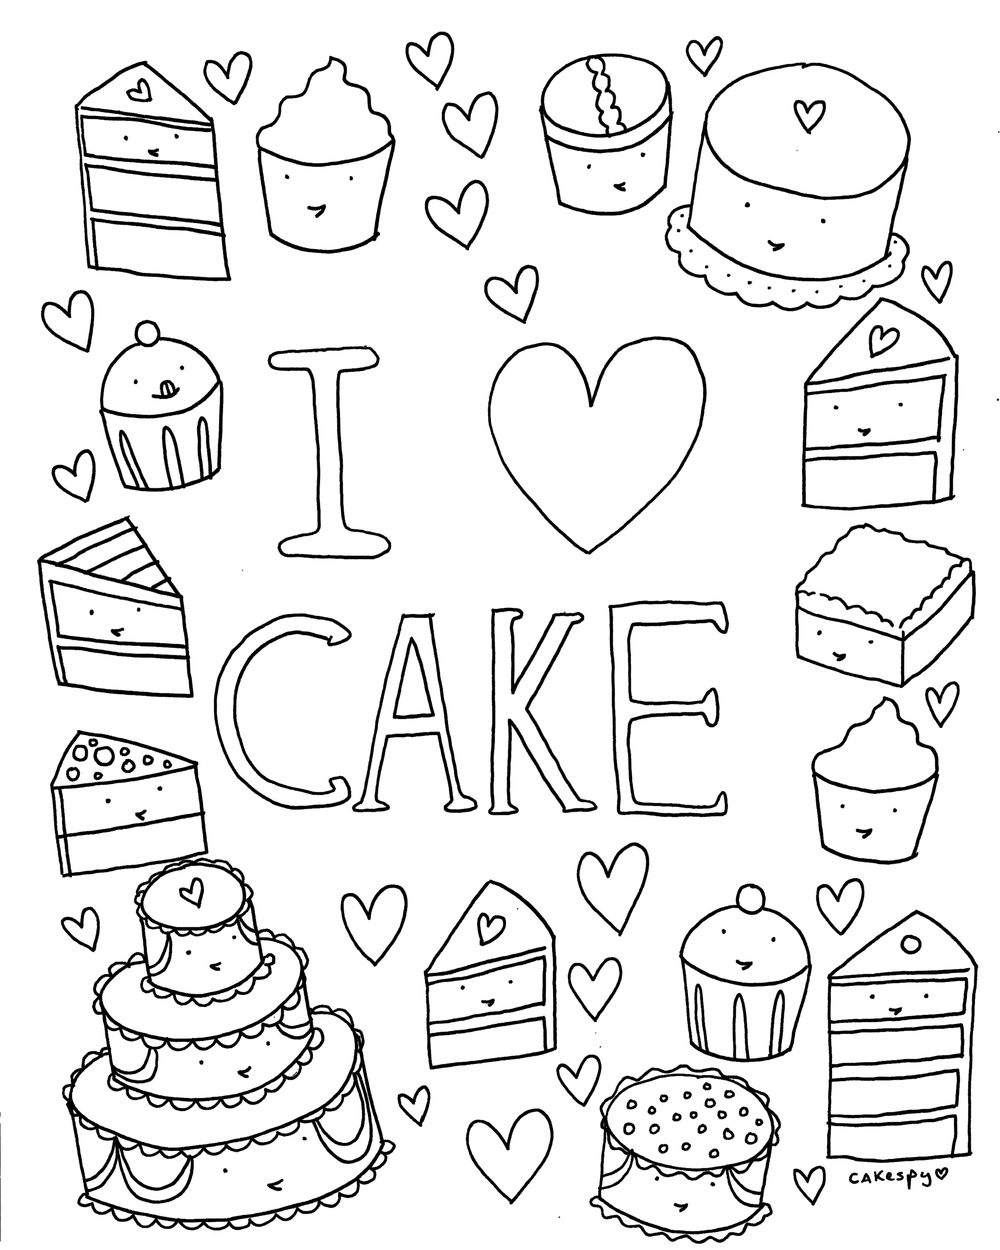 free coloring book page i love cake cakespy - Free Coloring Books